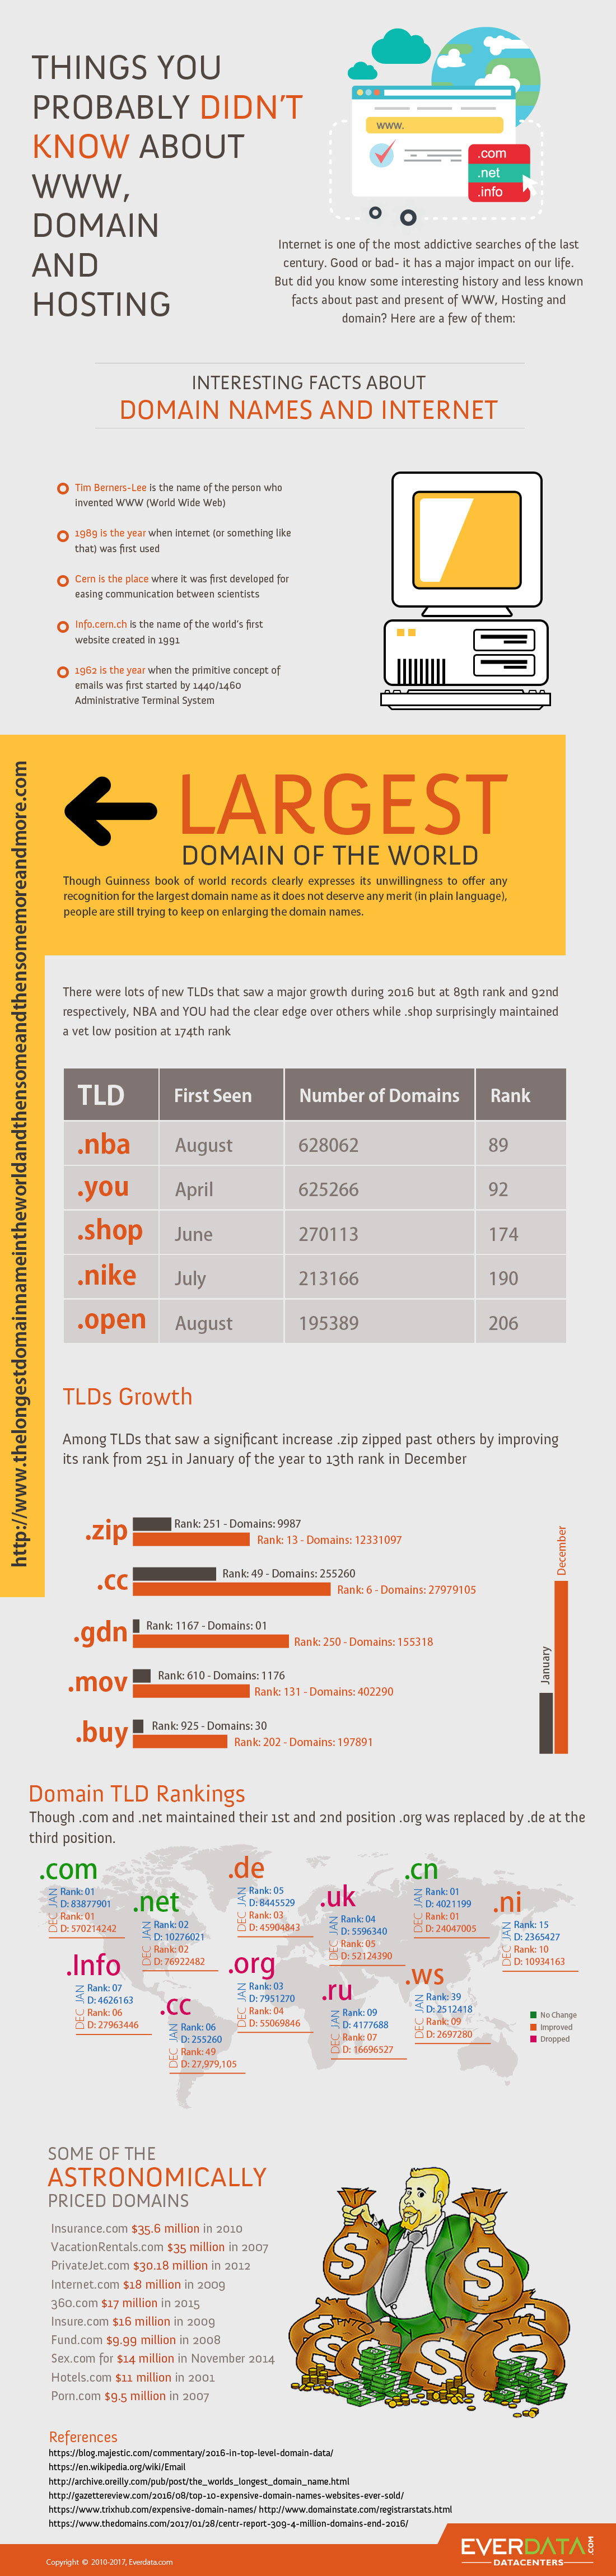 Internet Web Domain Facts and Statistics - Infographic